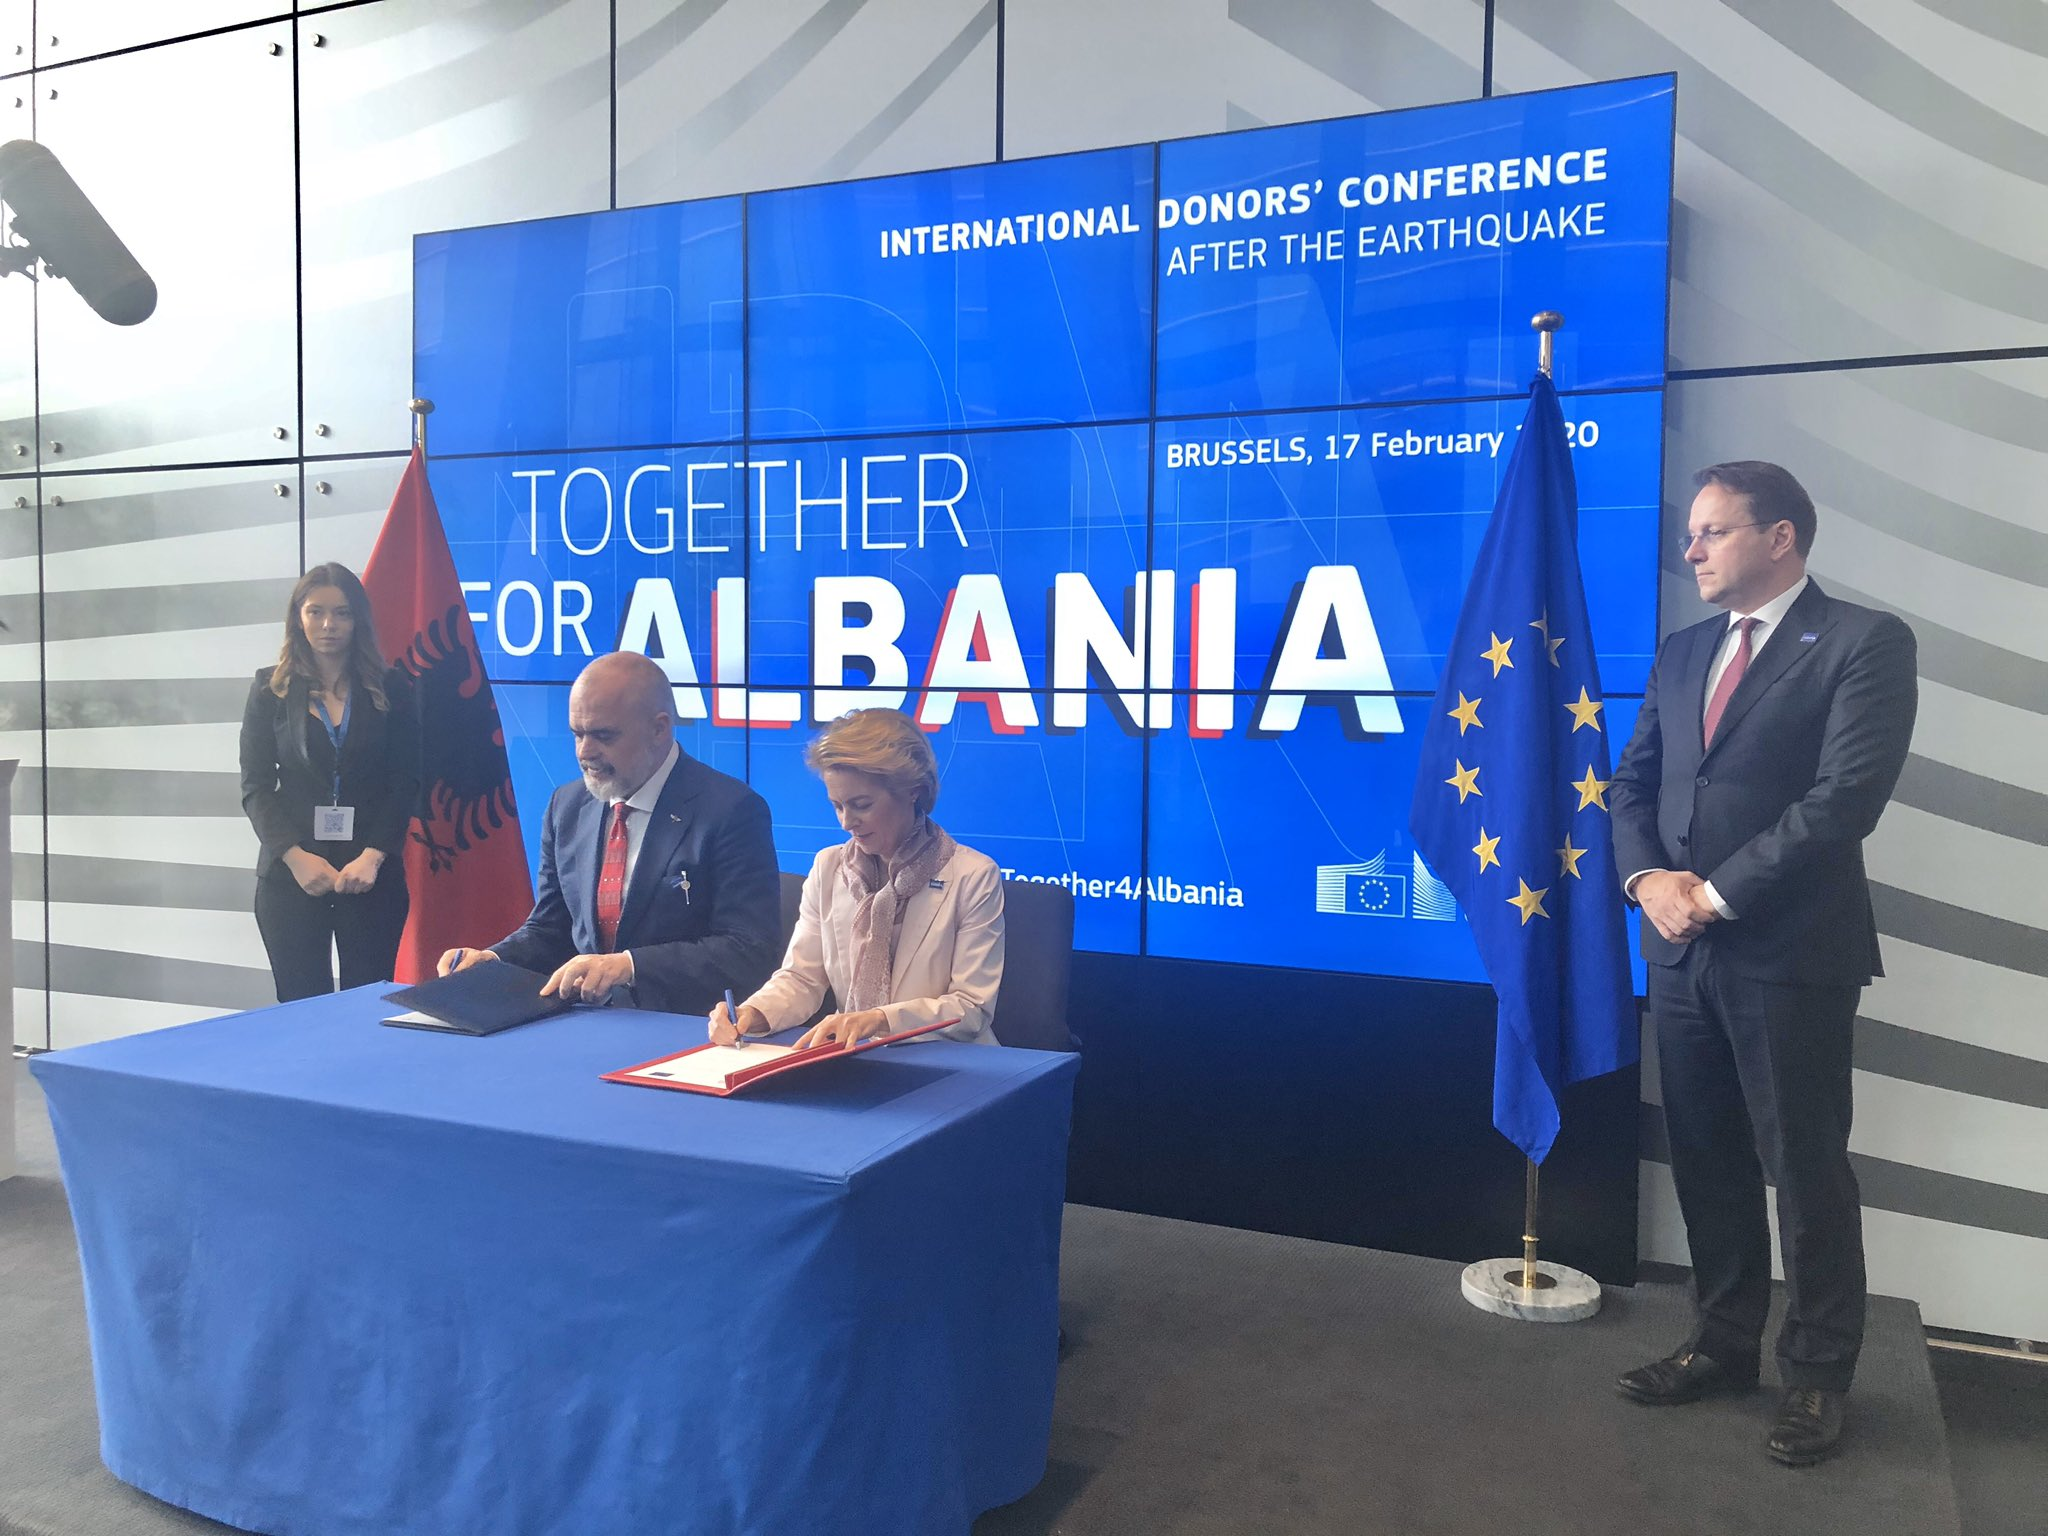 EU Bidders Excluded from Albania's Post-Earthquake Reconstruction Projects to Be Financed with EU Funds